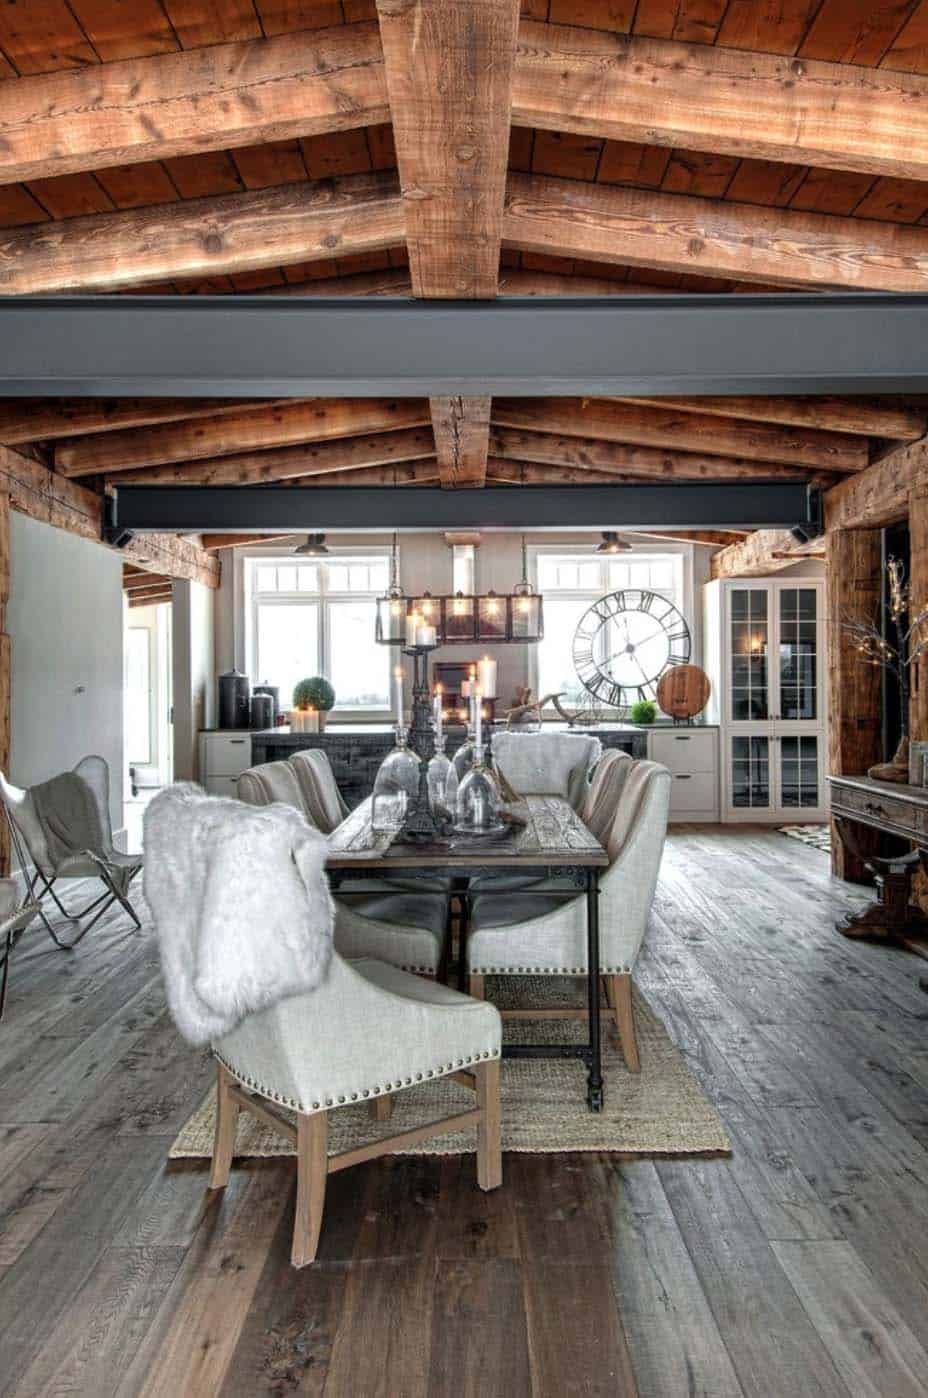 Rustic-Modern-Design-Timberworx-Custom-Homes-09-1-Kindesign